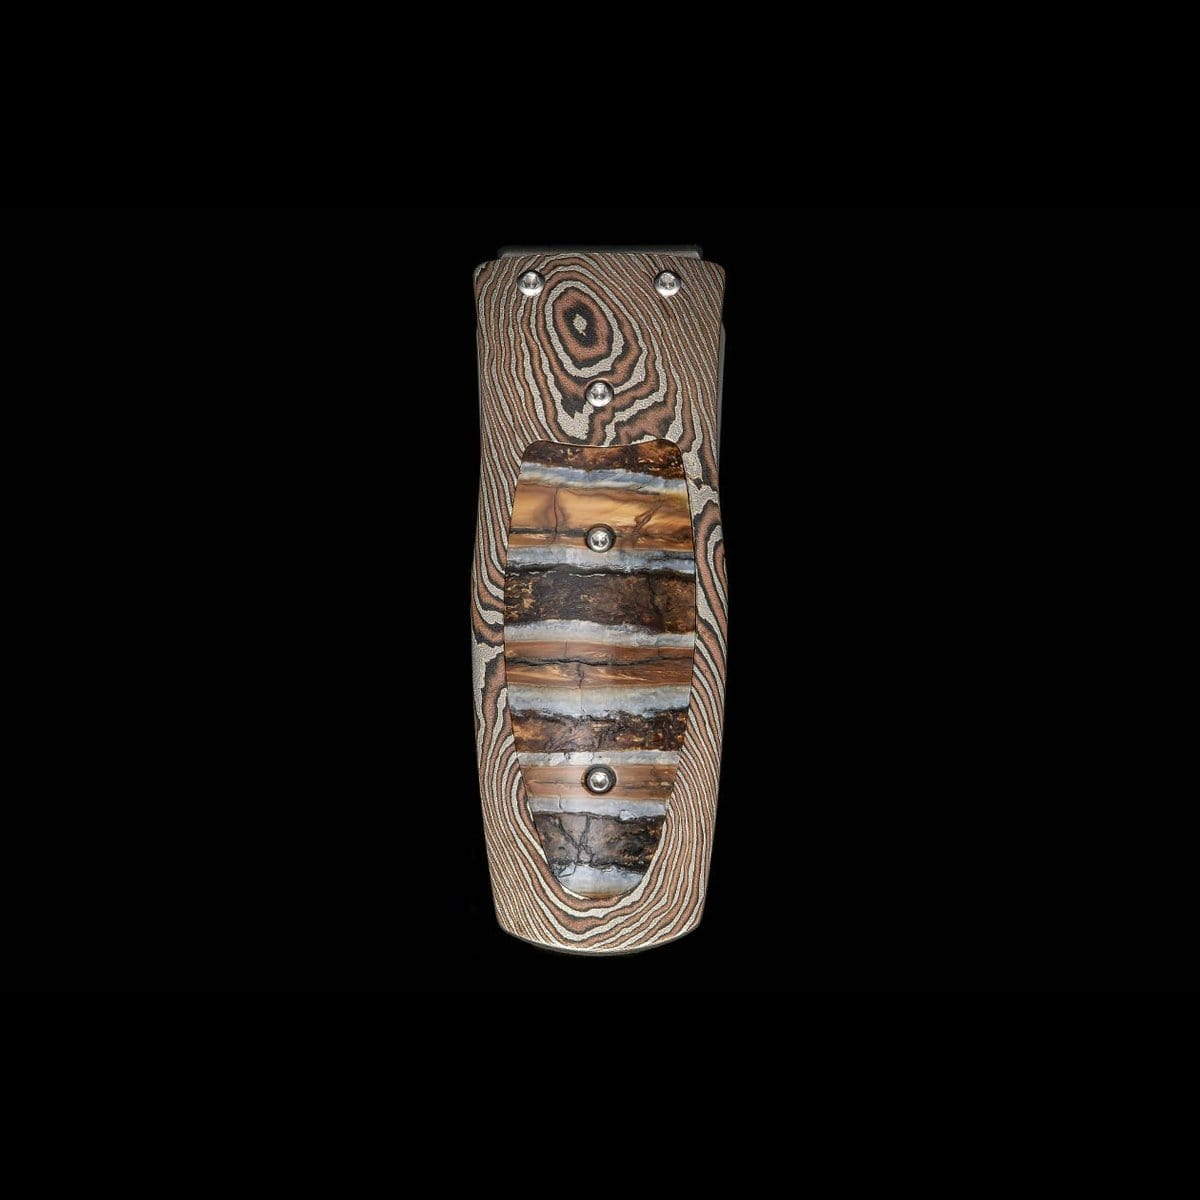 Pharaoh Epic Limited Edition Money Clip - M4 EPIC - William Henry